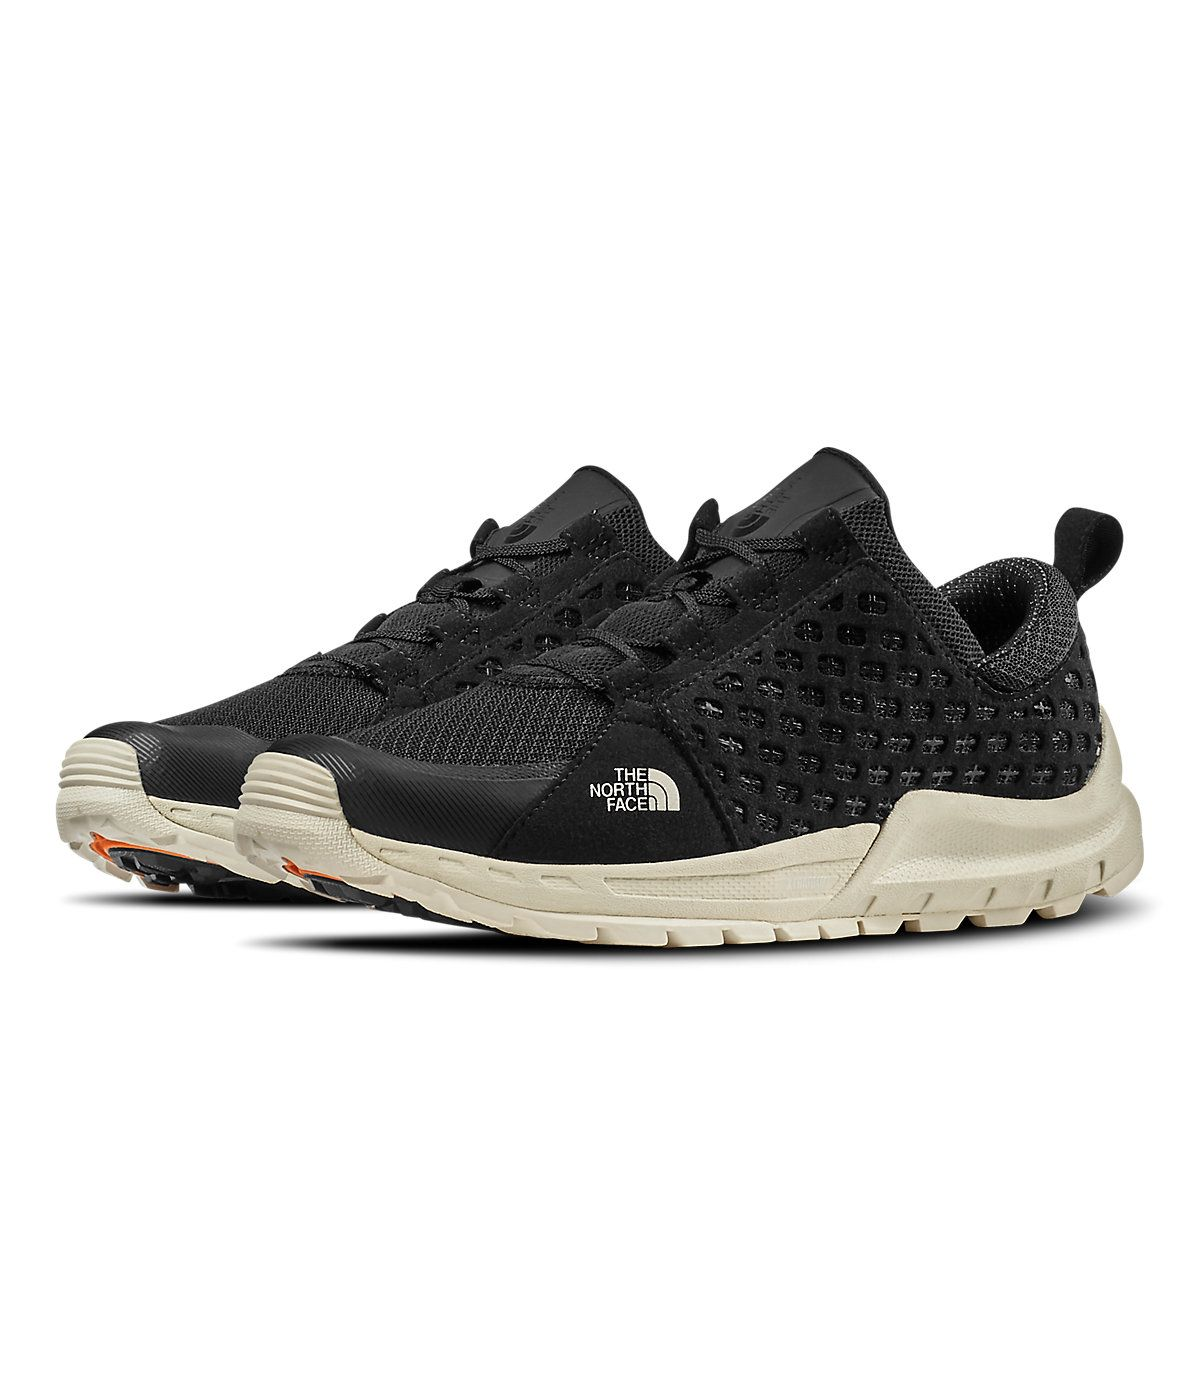 01f34ff2a The North Face Men's Mountain Sneaker in 2019 | Products | Sneakers ...